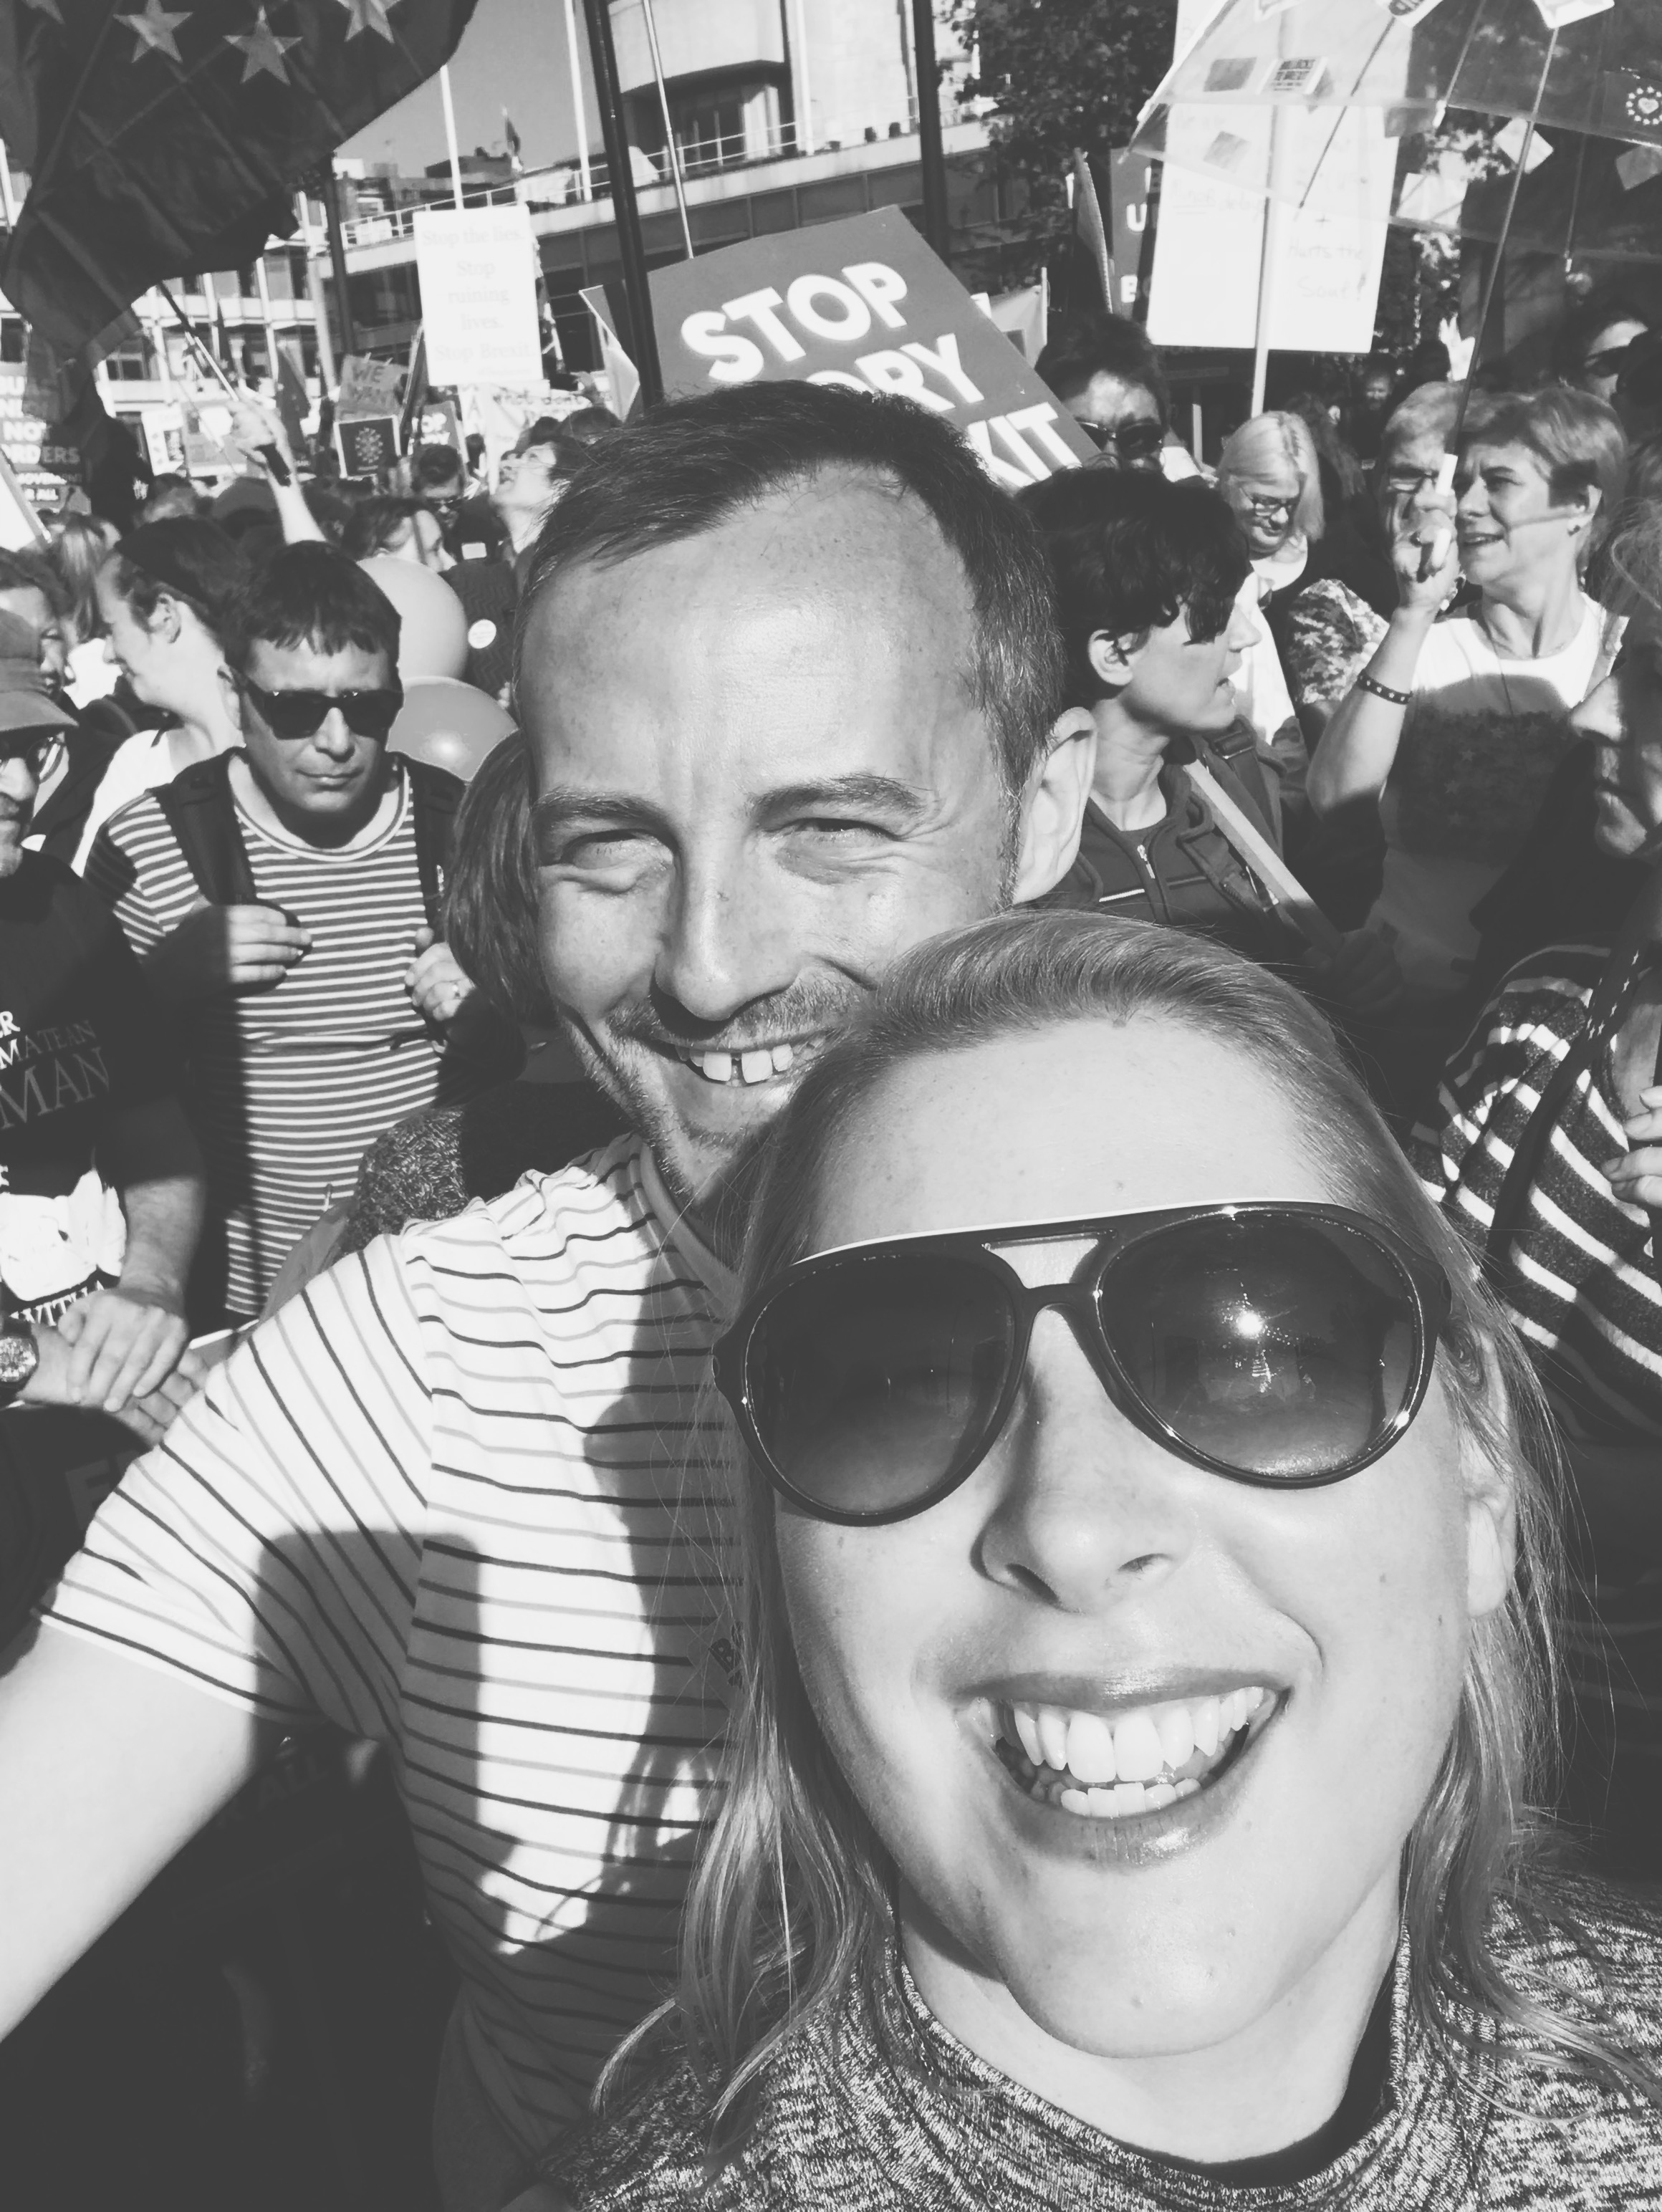 Power to the people. Mark and I at the People's March in October 2018.